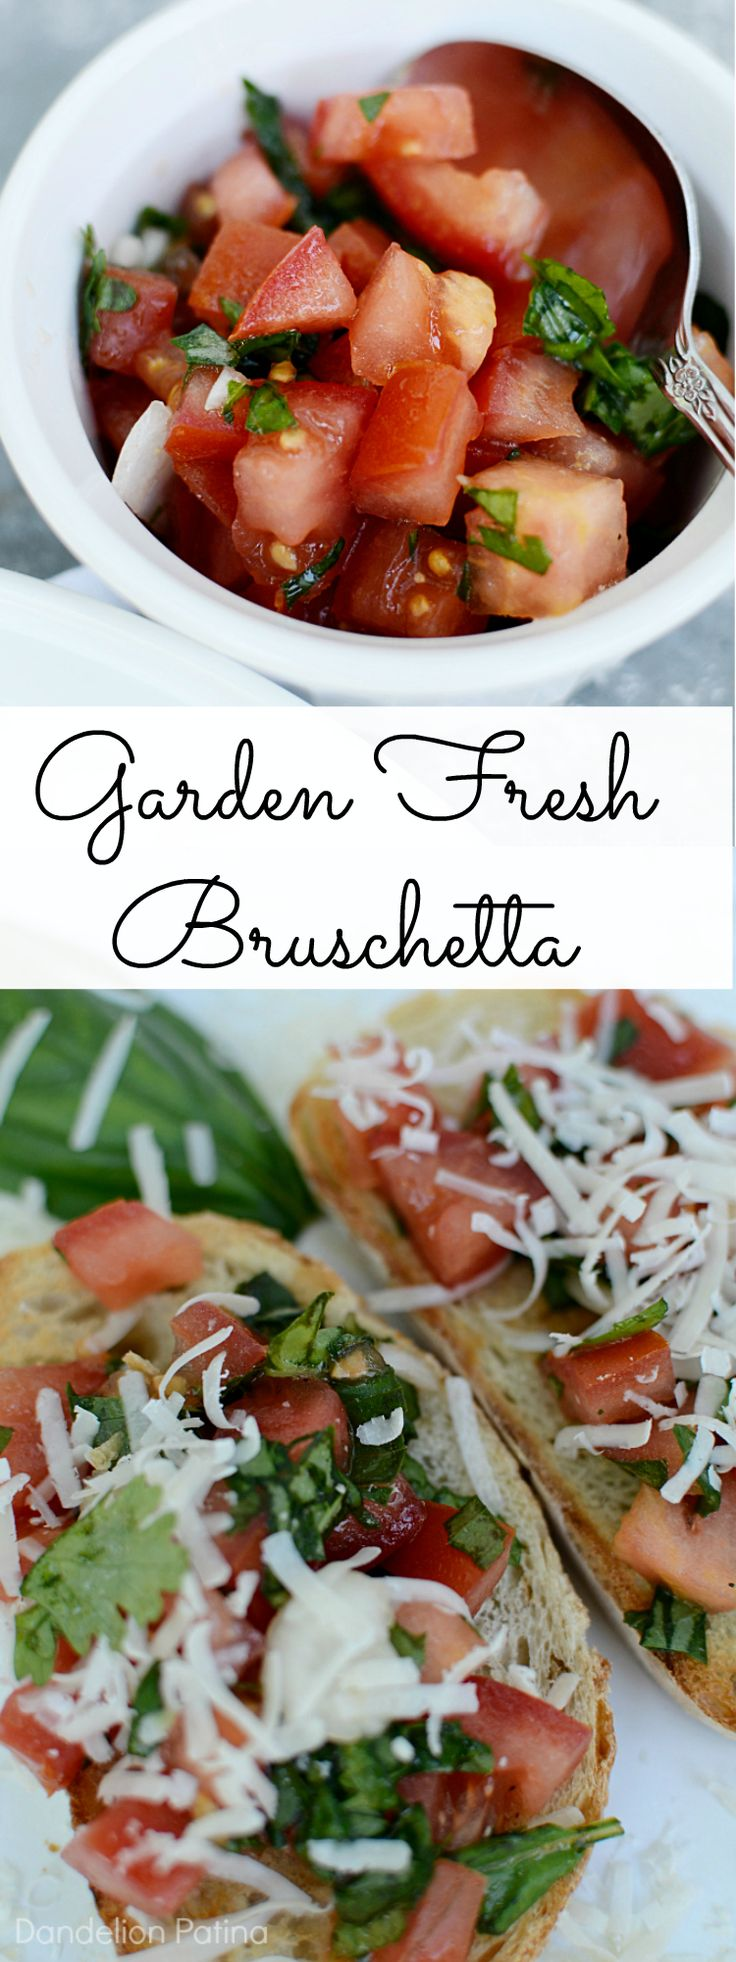 Looking for an inexpensive appetizer to serve guests? This garden fresh bruschetta is not only full of flavor, but very pretty too!